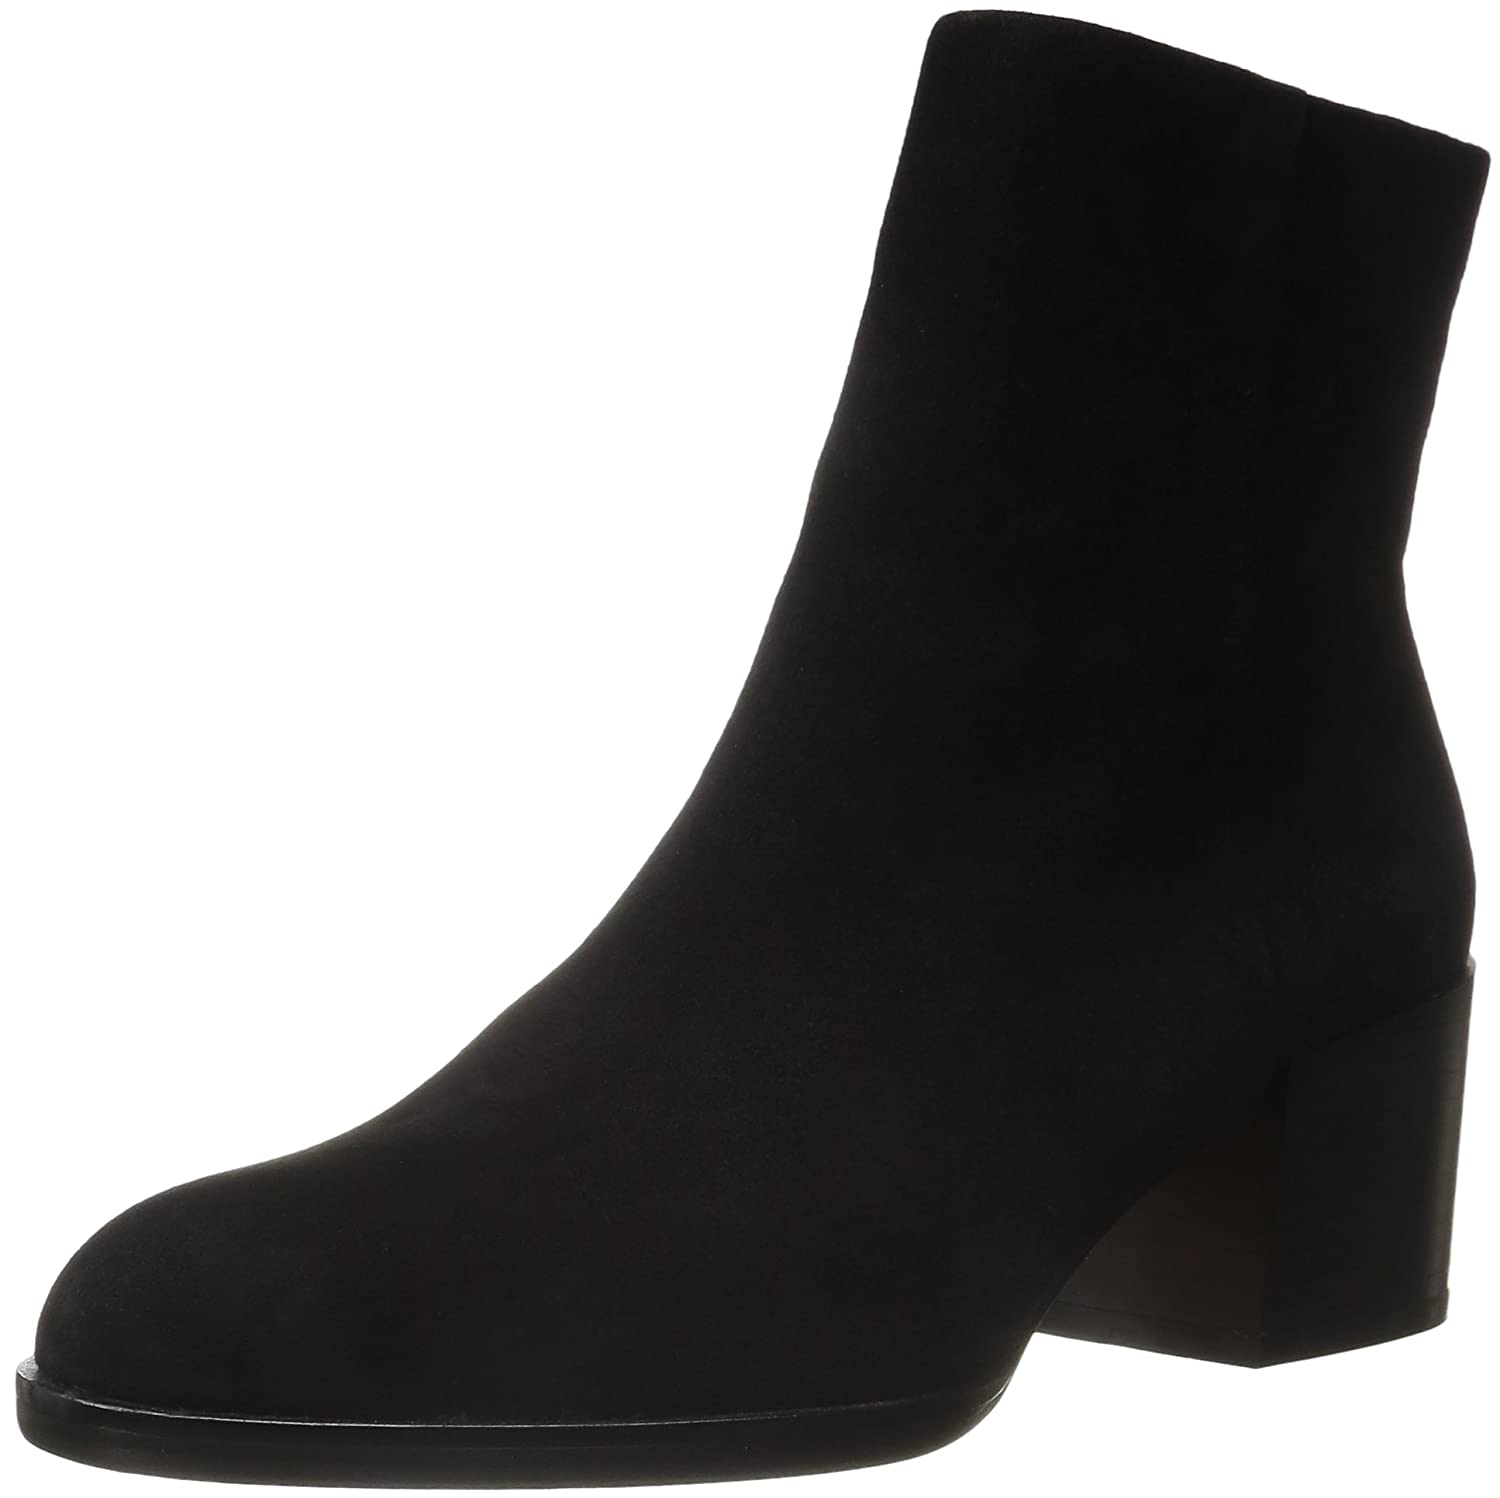 Sam Edelman Women's Joey Boot B01835TB62 10 B(M) US|Black Suede